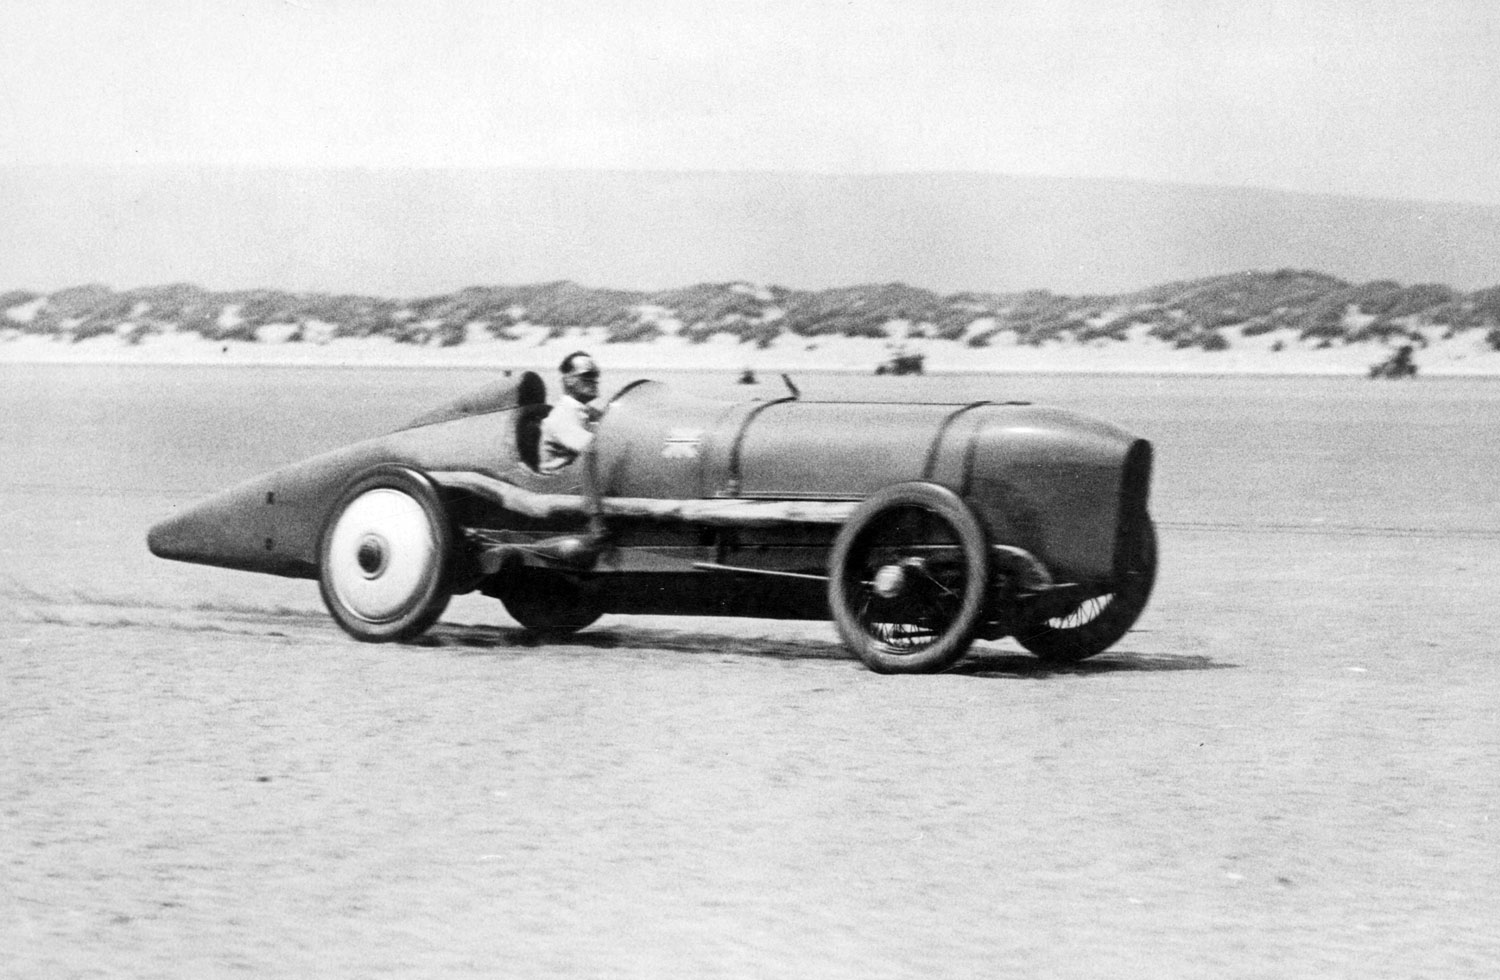 Malcolm Campbell at speed in Sunbeam 350hp at Pendine Sands